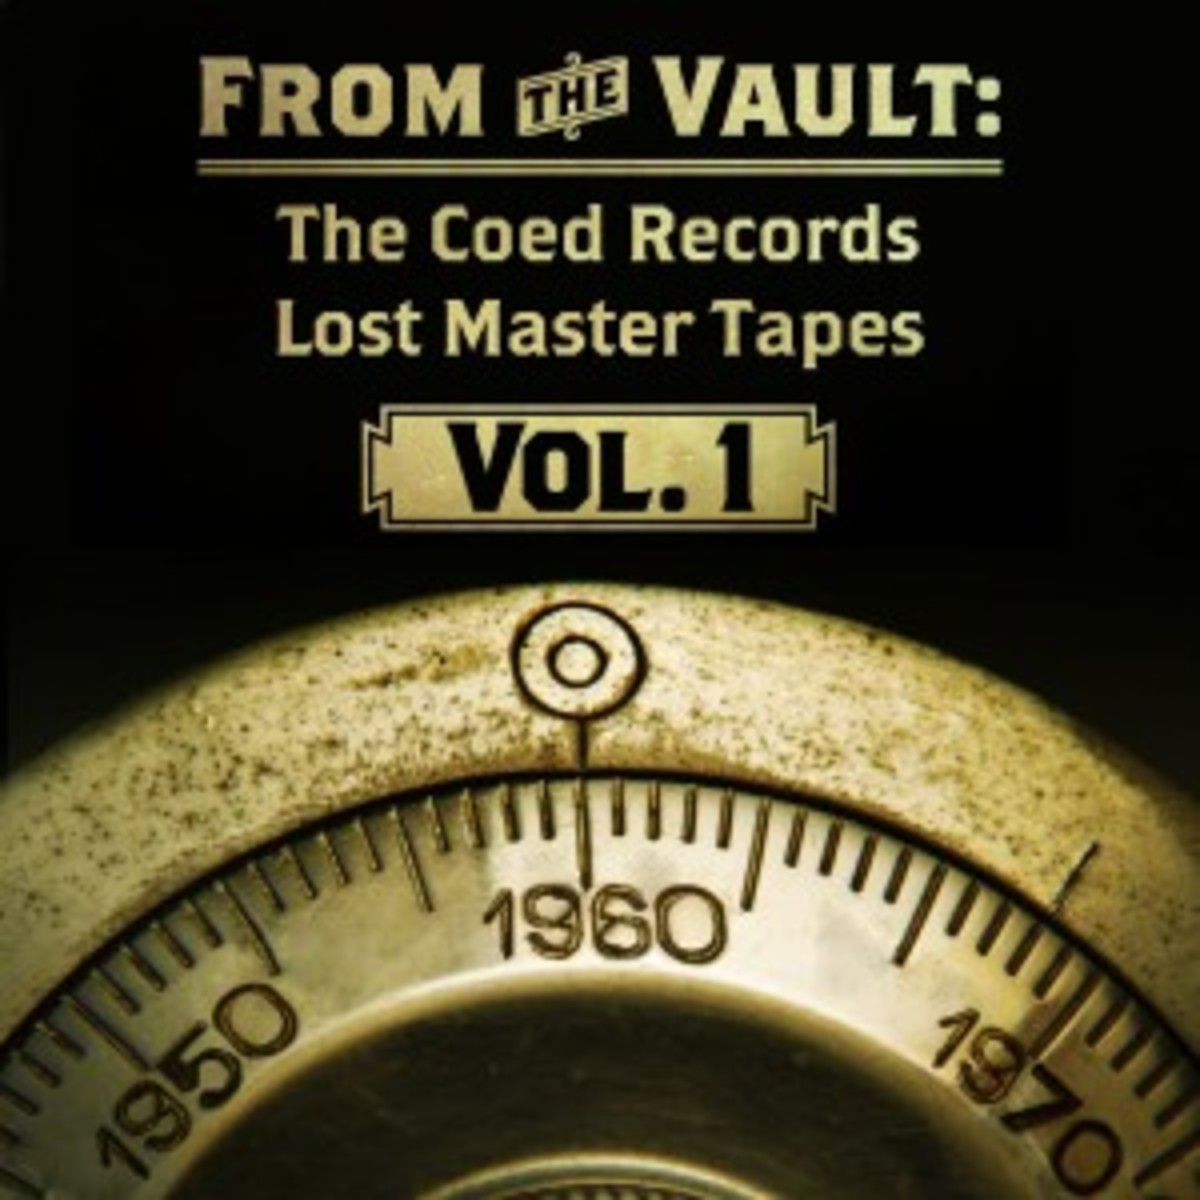 From the Coed Vaults COED vol 1